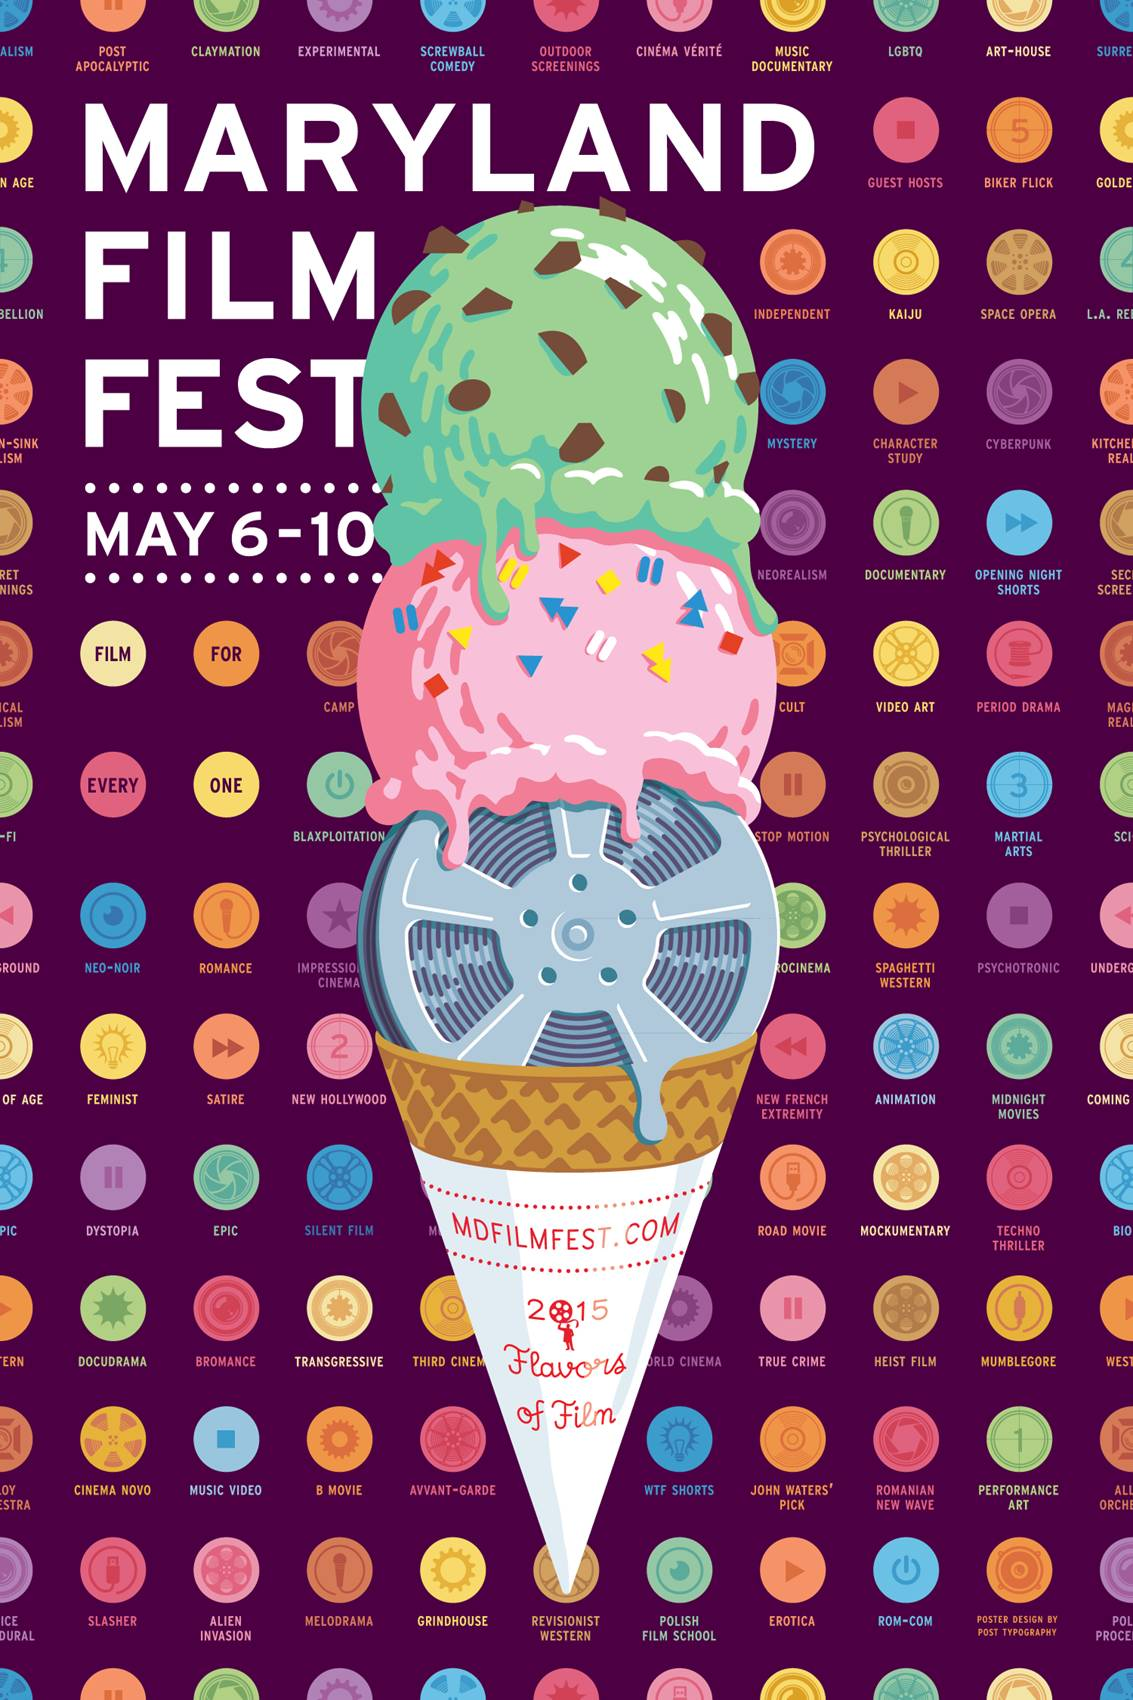 Posterized: Maryland Film Festival, 1999-2015